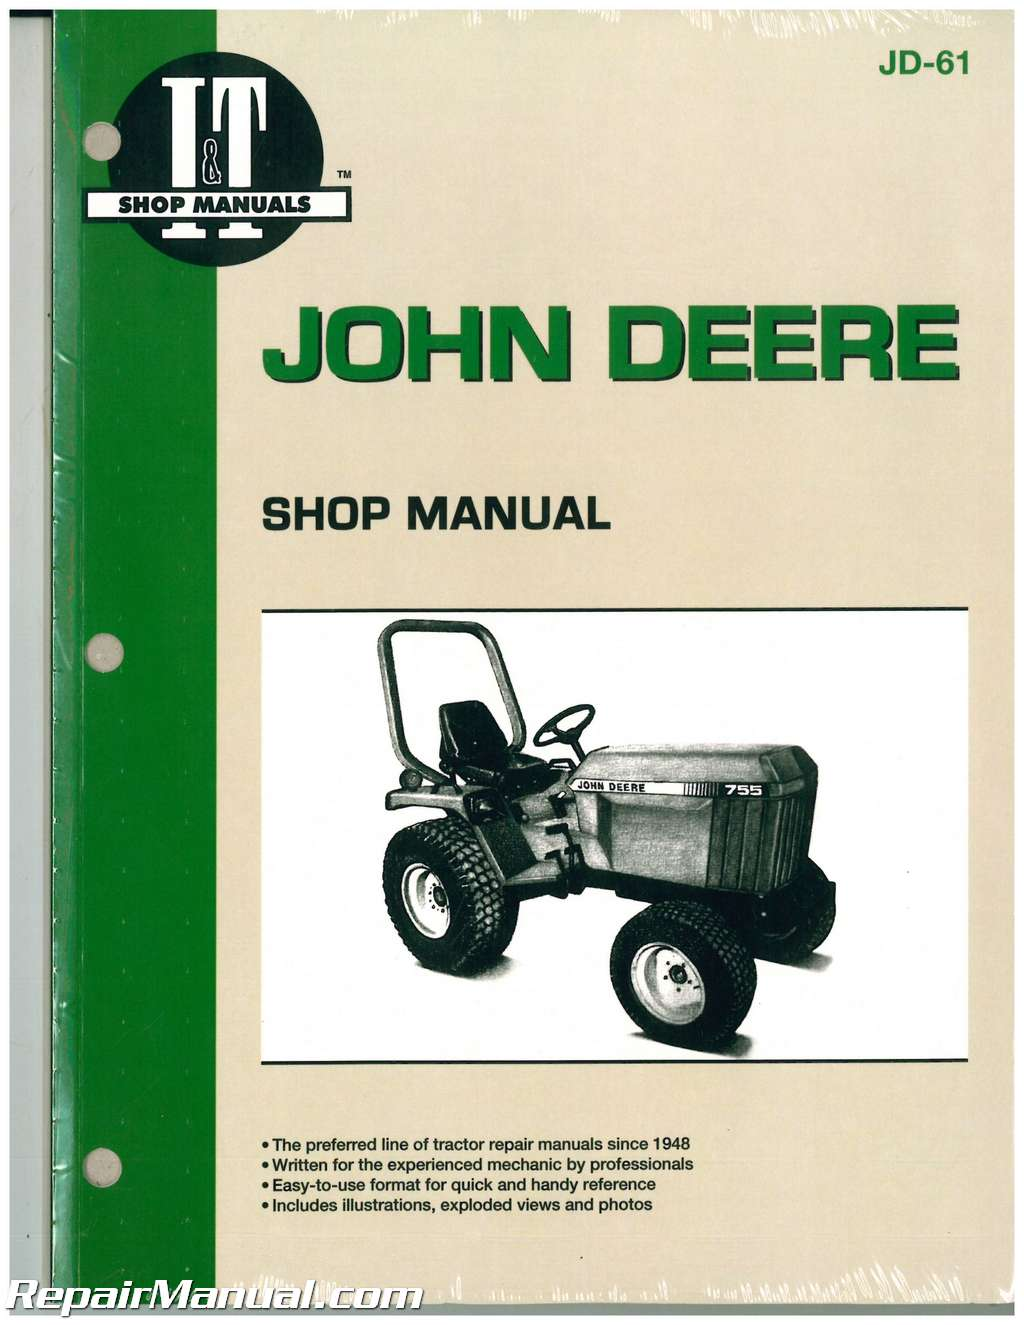 john deere 655 755 756 855 856 955 tractor workshop manual rh repairmanual com john deere repair manual 4310 john deere repair manuals online free